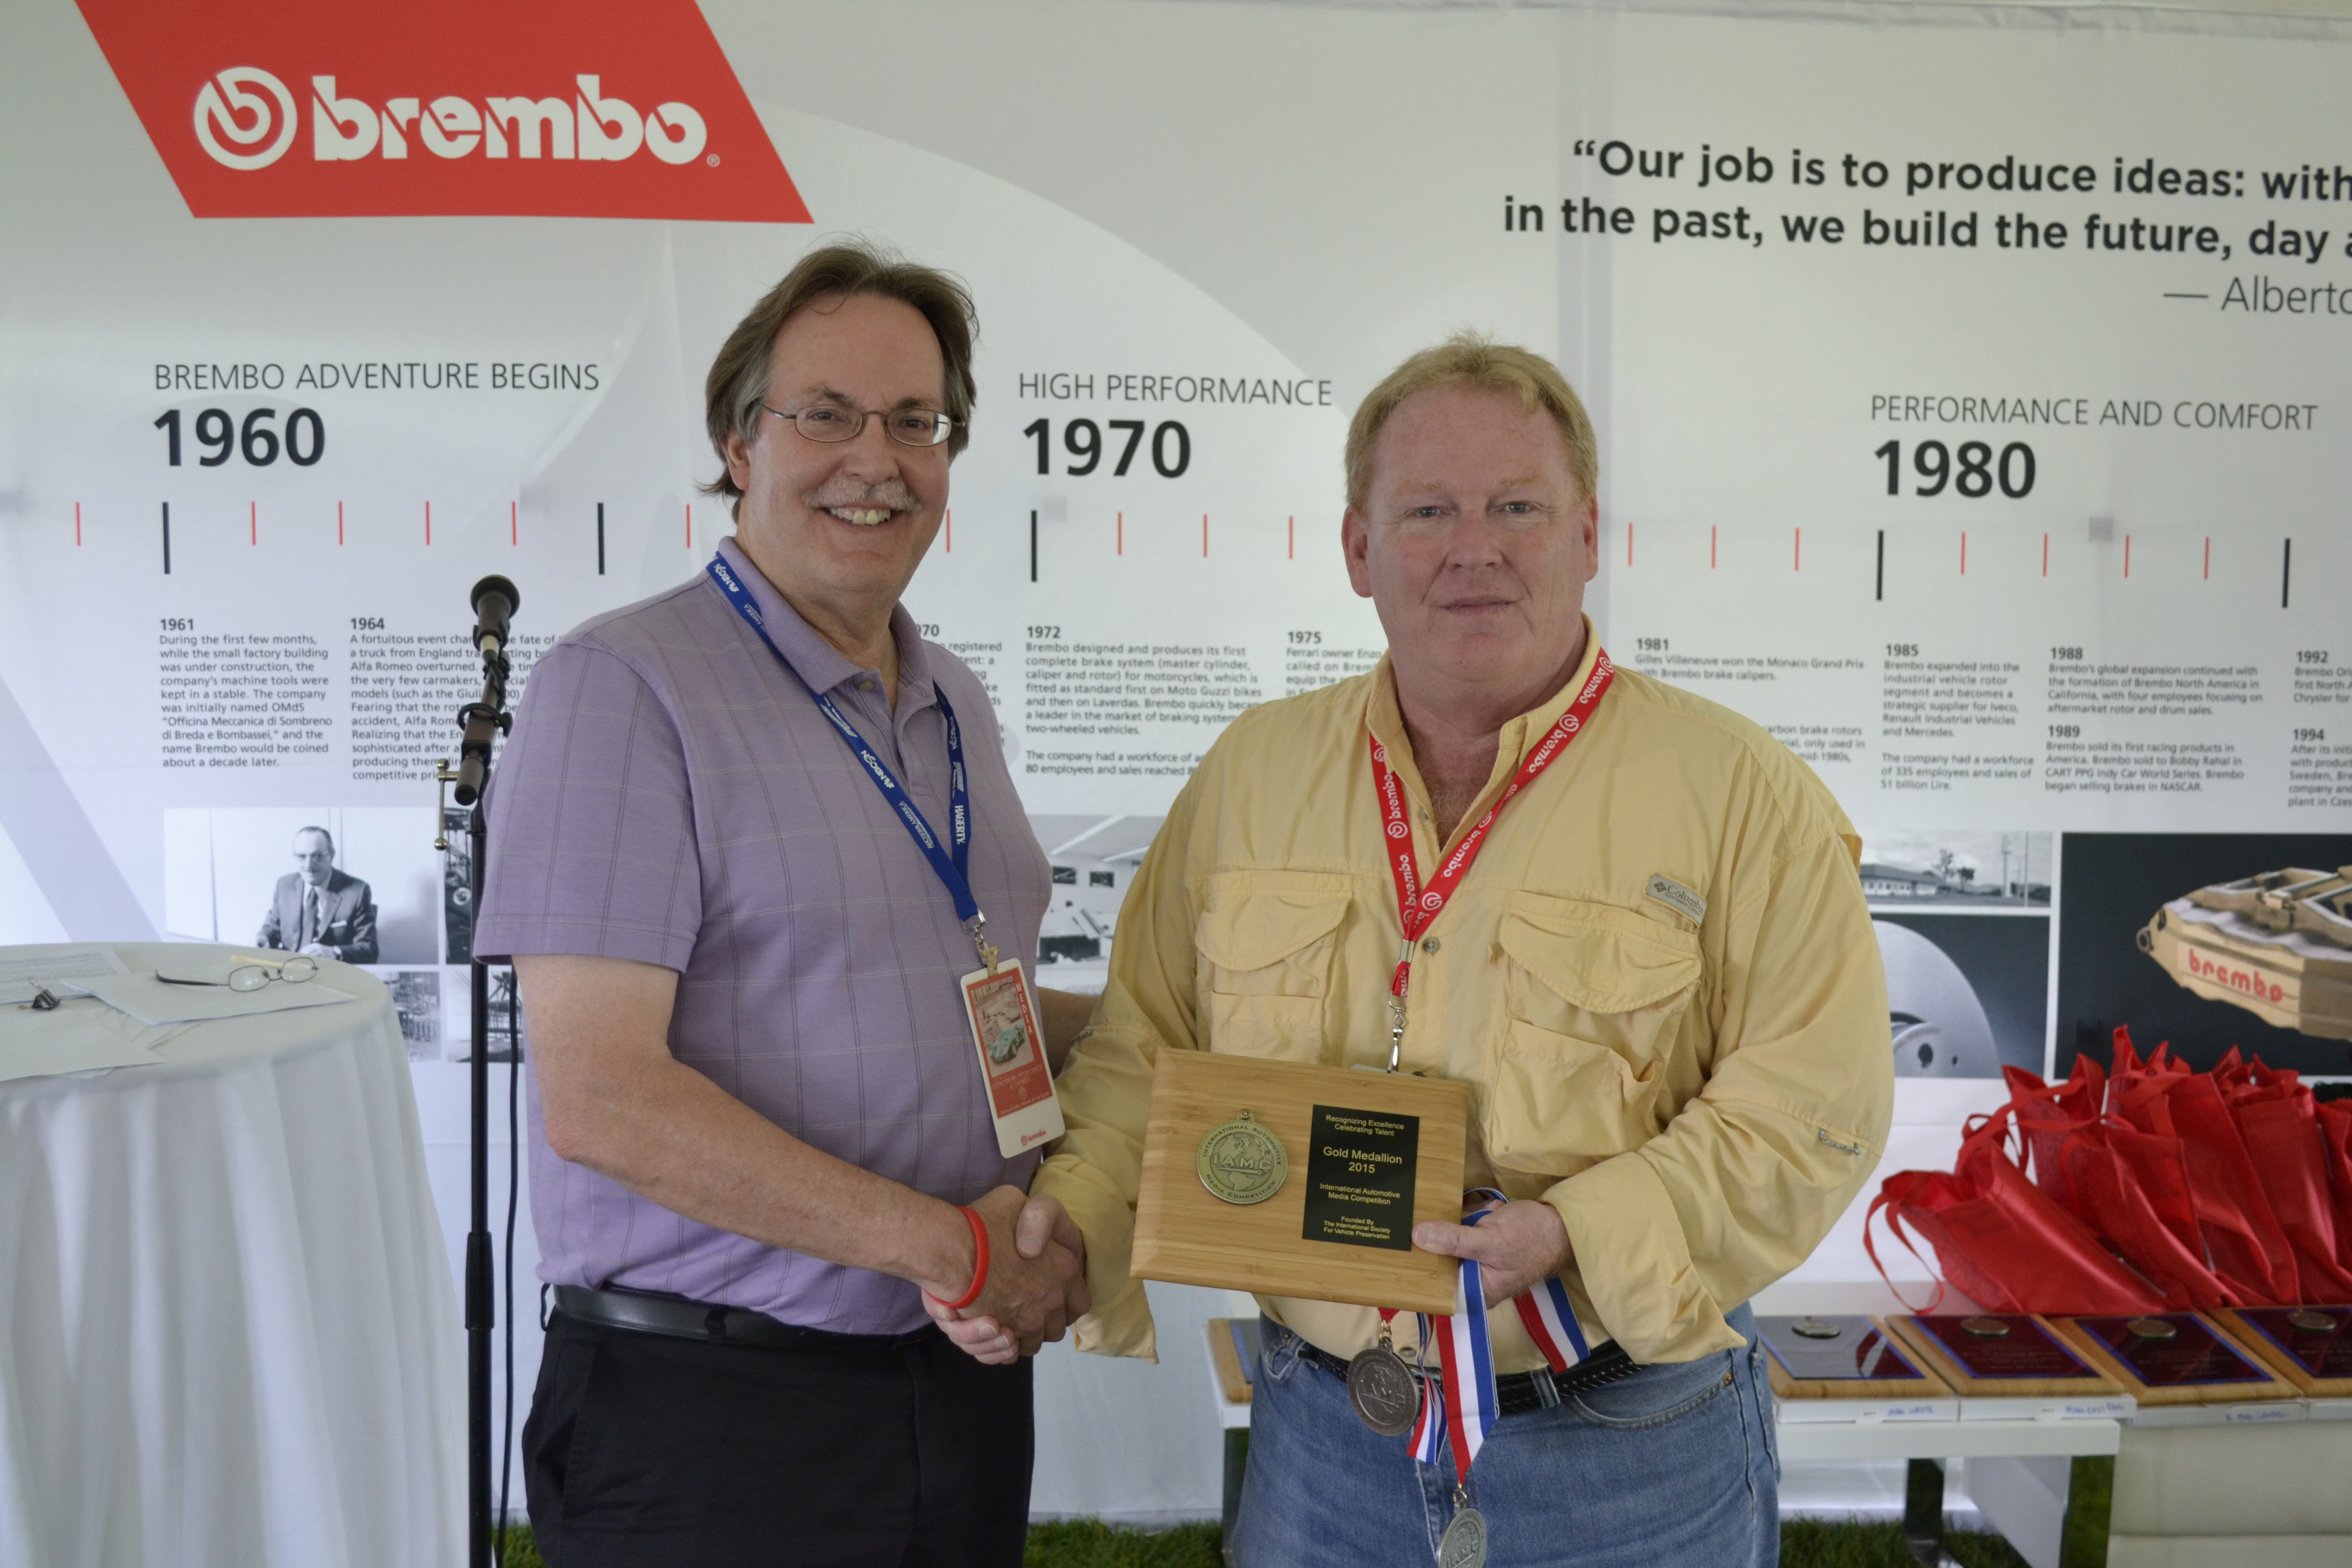 Modern Tire Dealer Wins Five Medals and 'Best of' Category